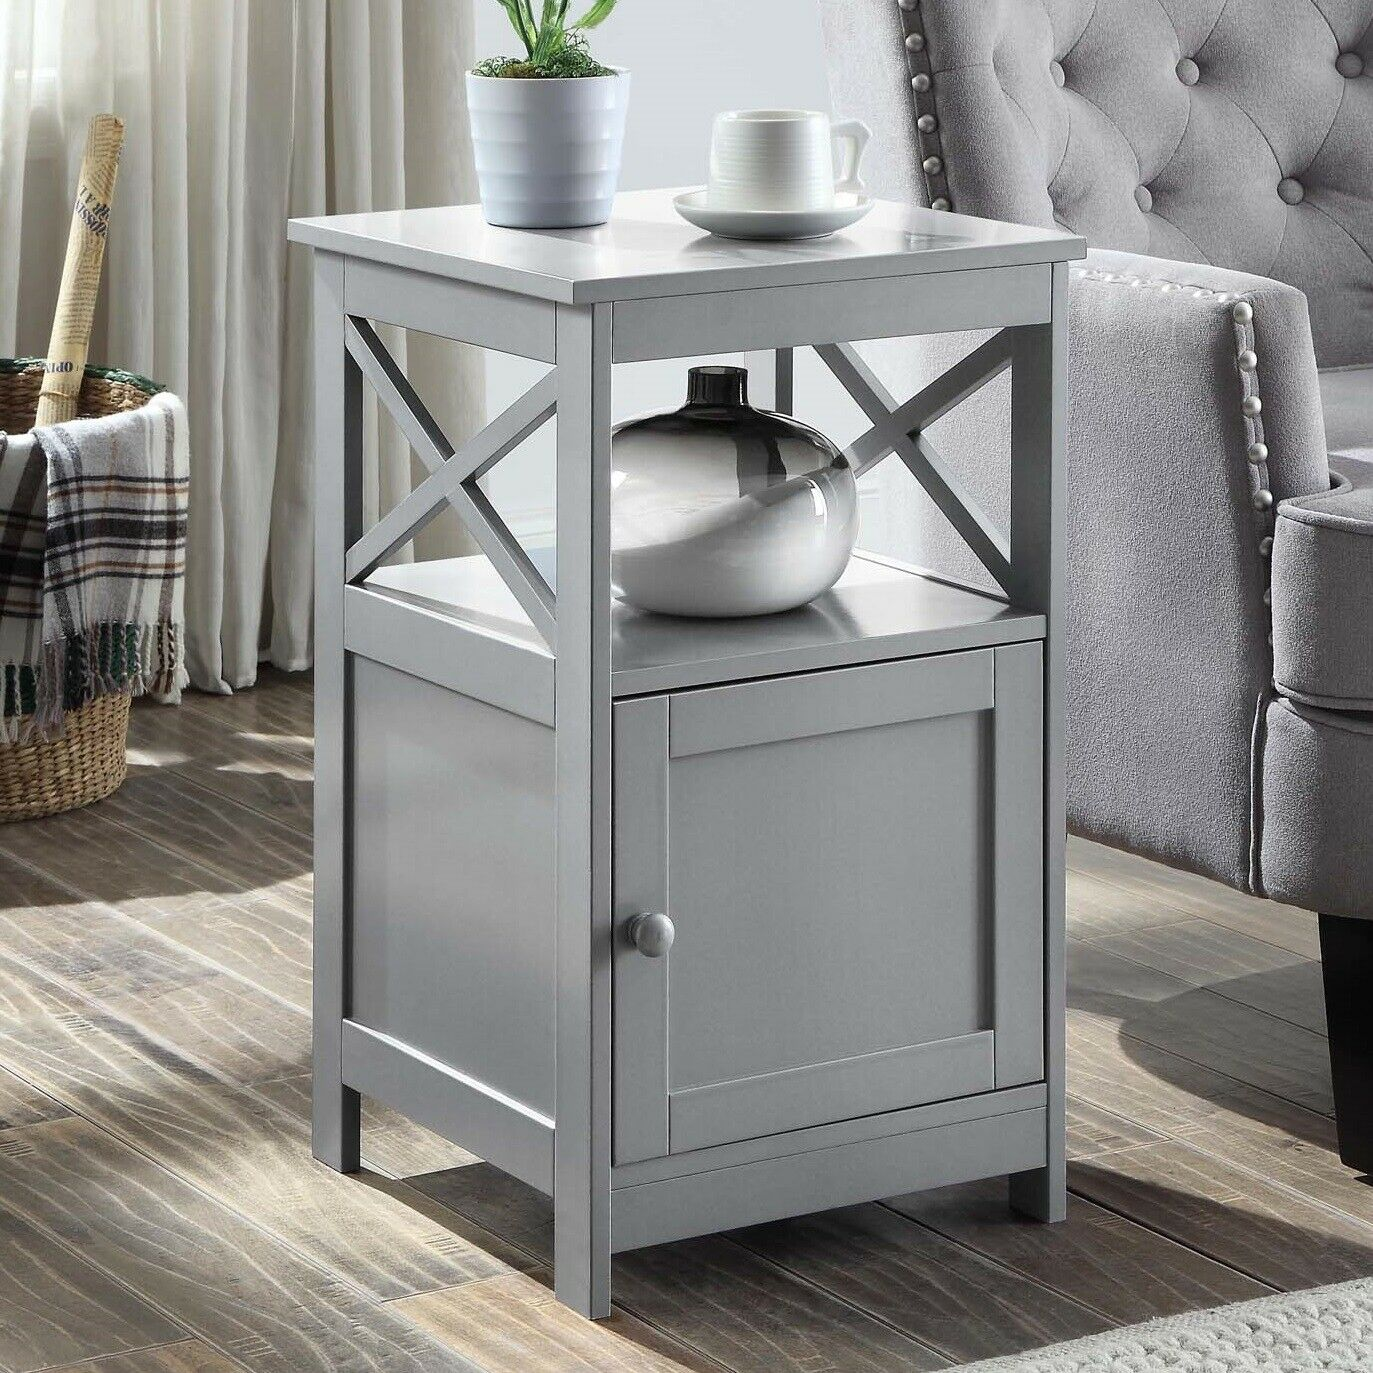 Modern Side Table W Cabinet Storage Square Lamp Accent Decor Display Stand Gray Ebay